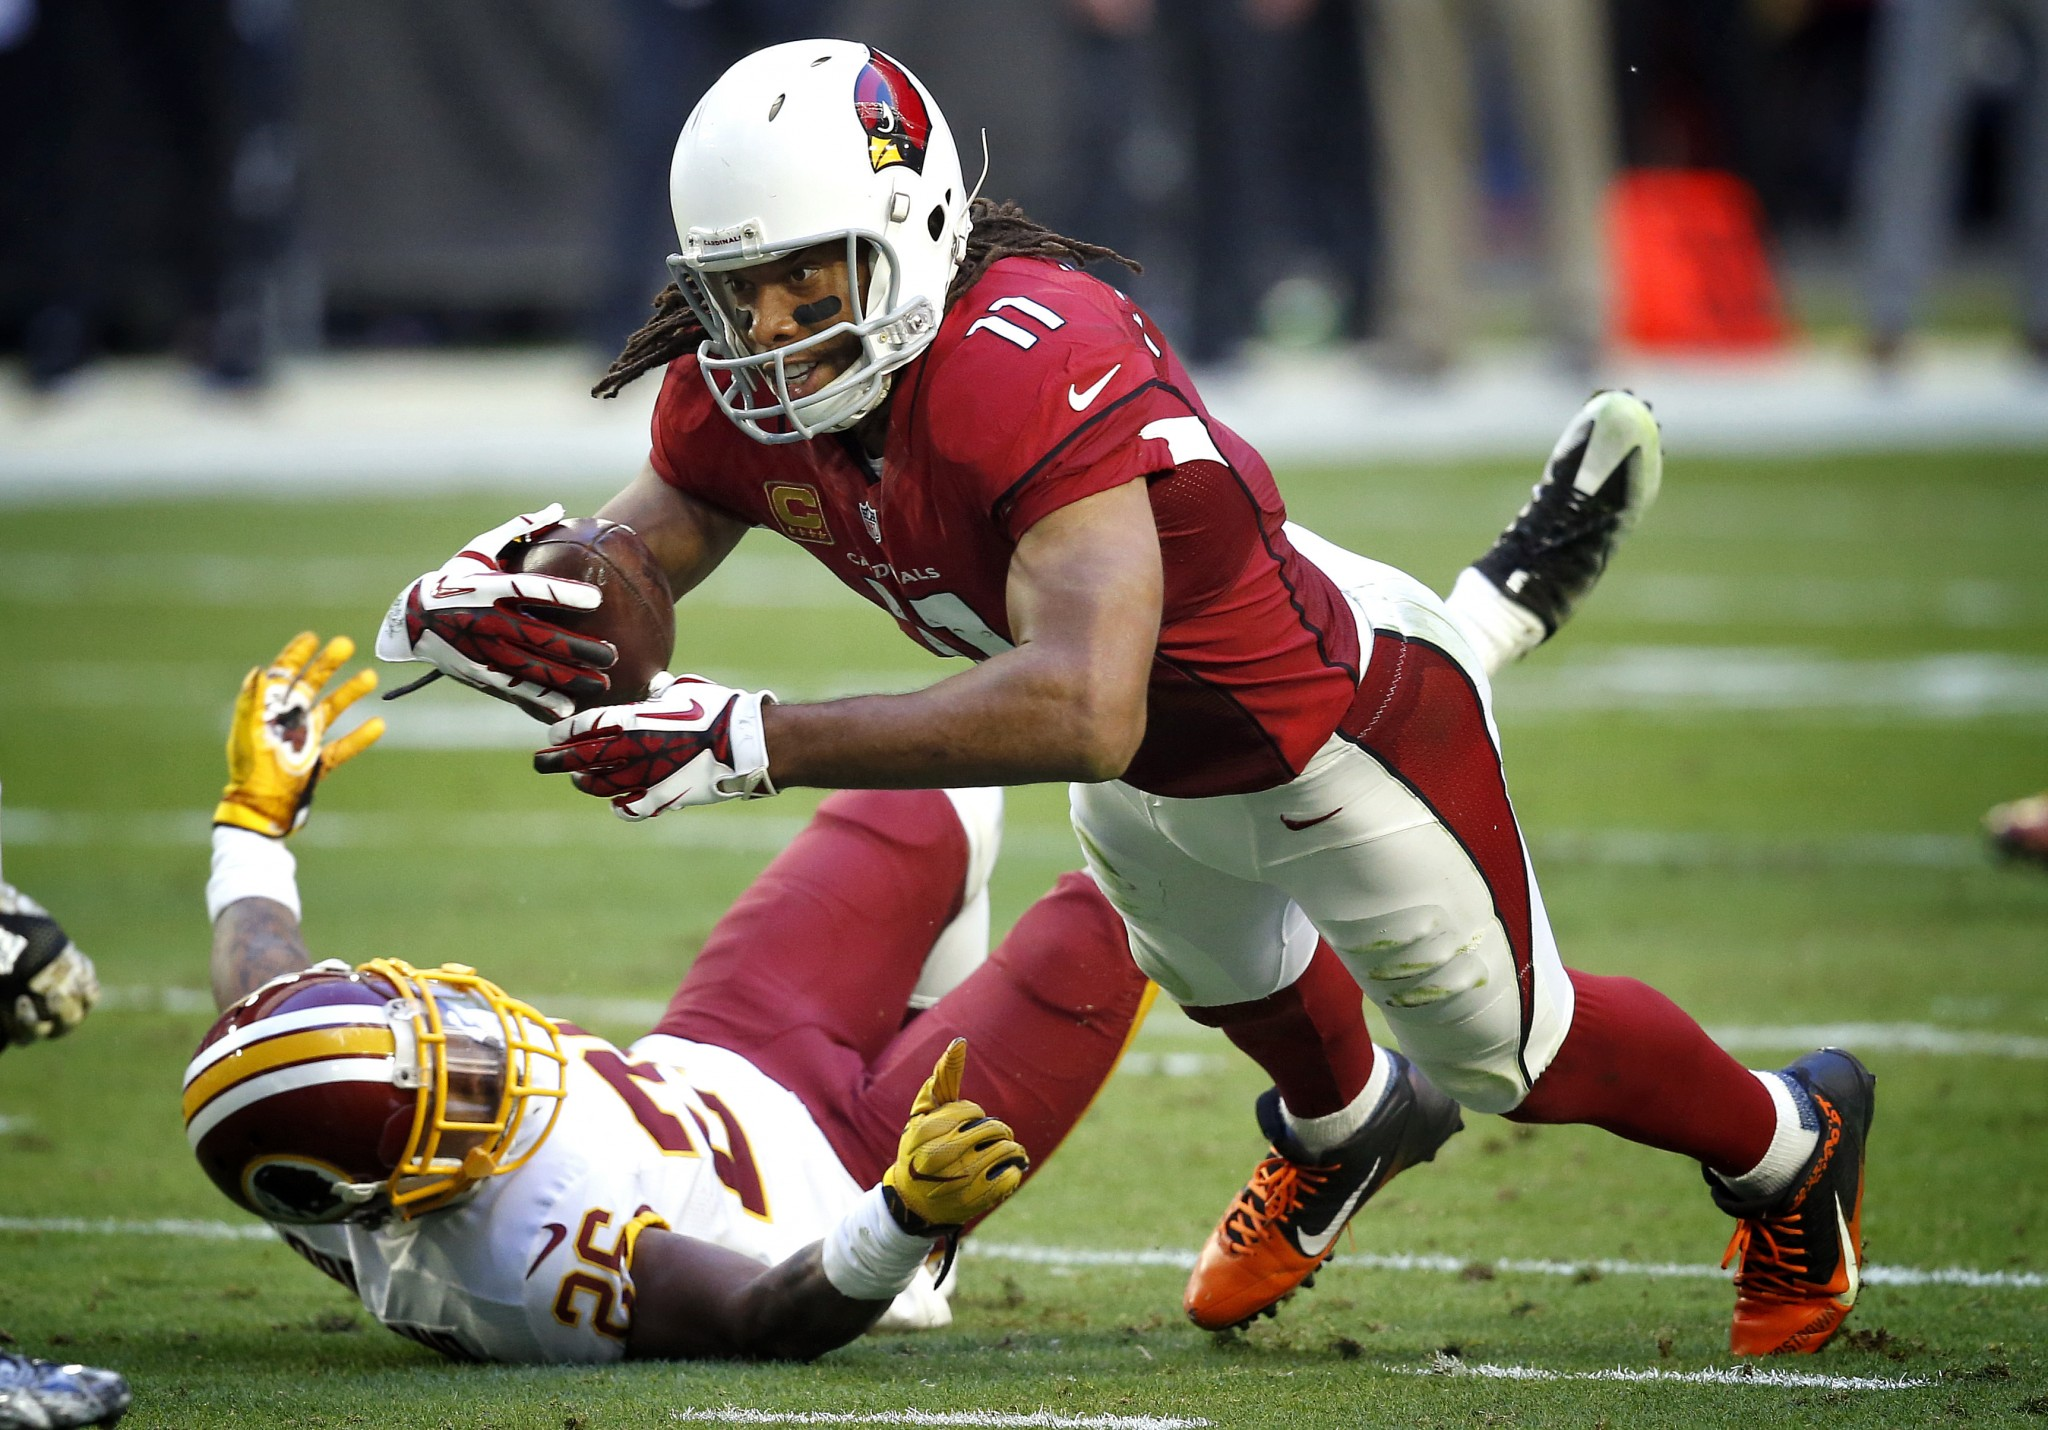 Larry Fitzgerald glad milestones came in a win